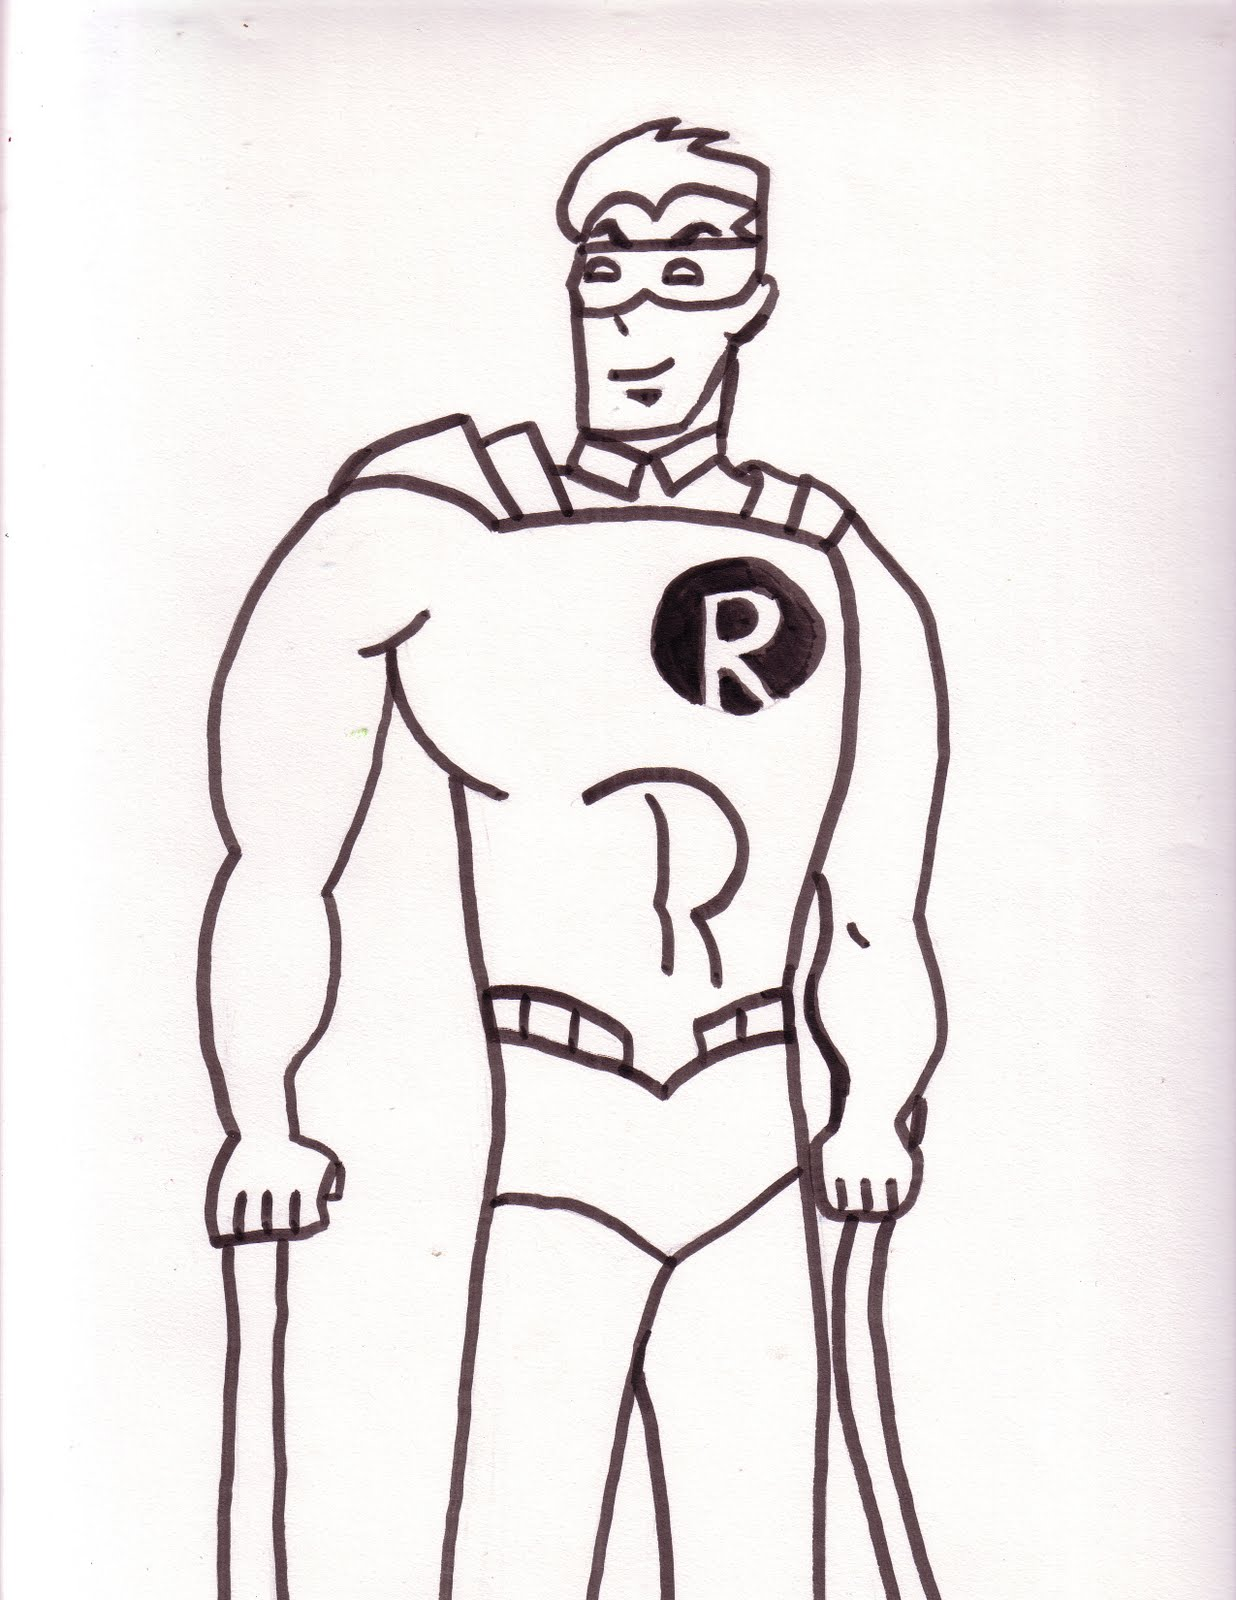 coloring pages batman robin - photo #33